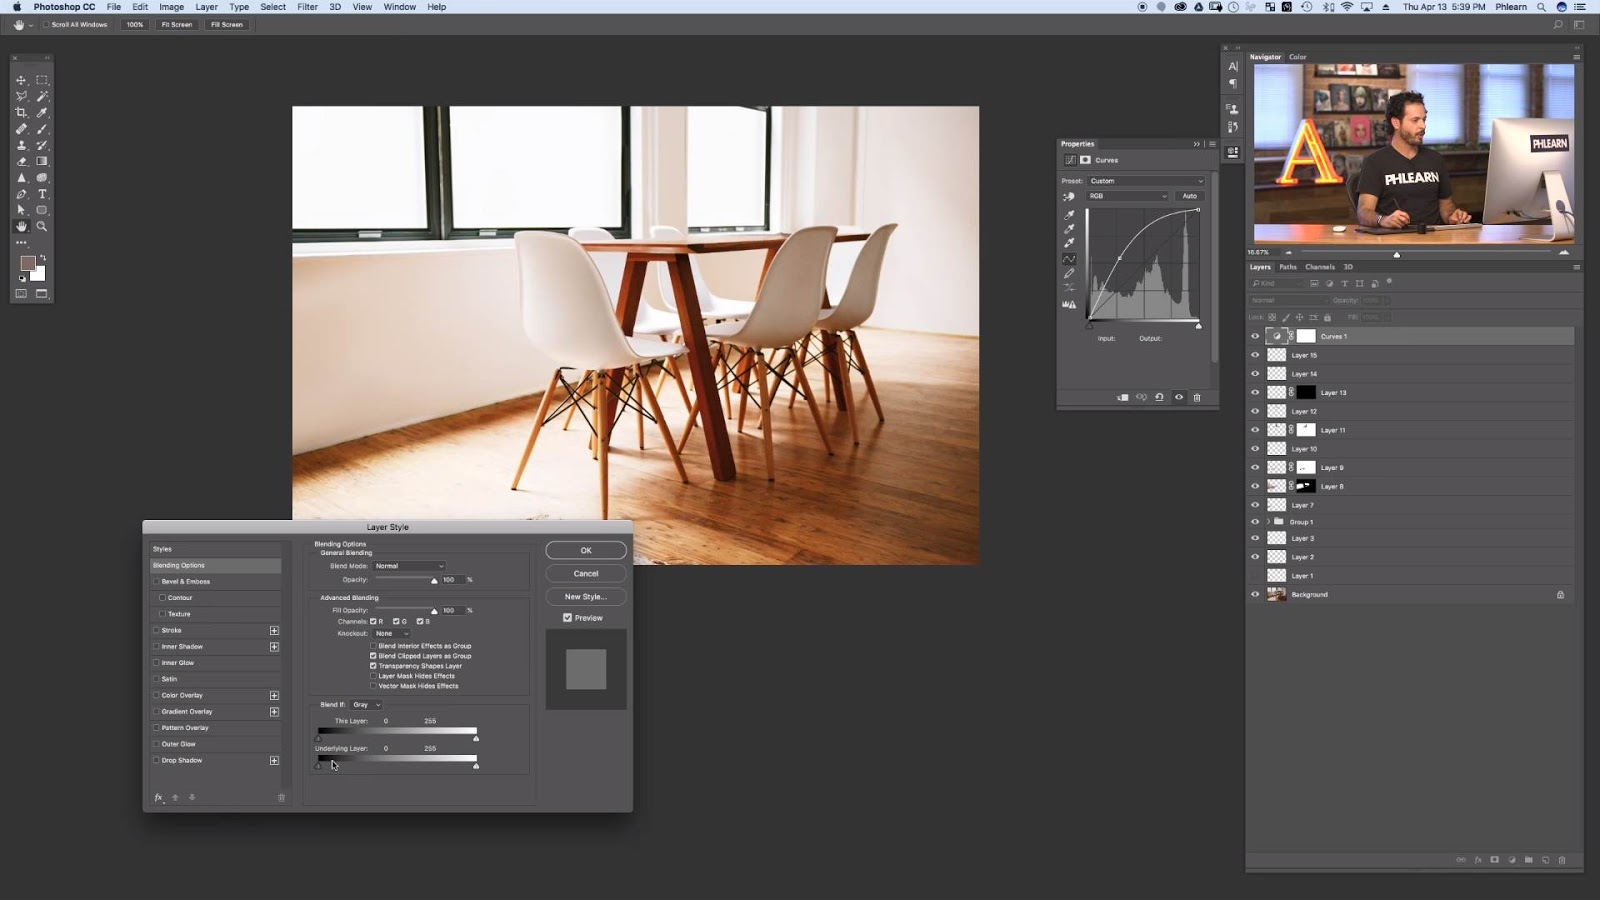 How to Retouch Environments in Photoshop